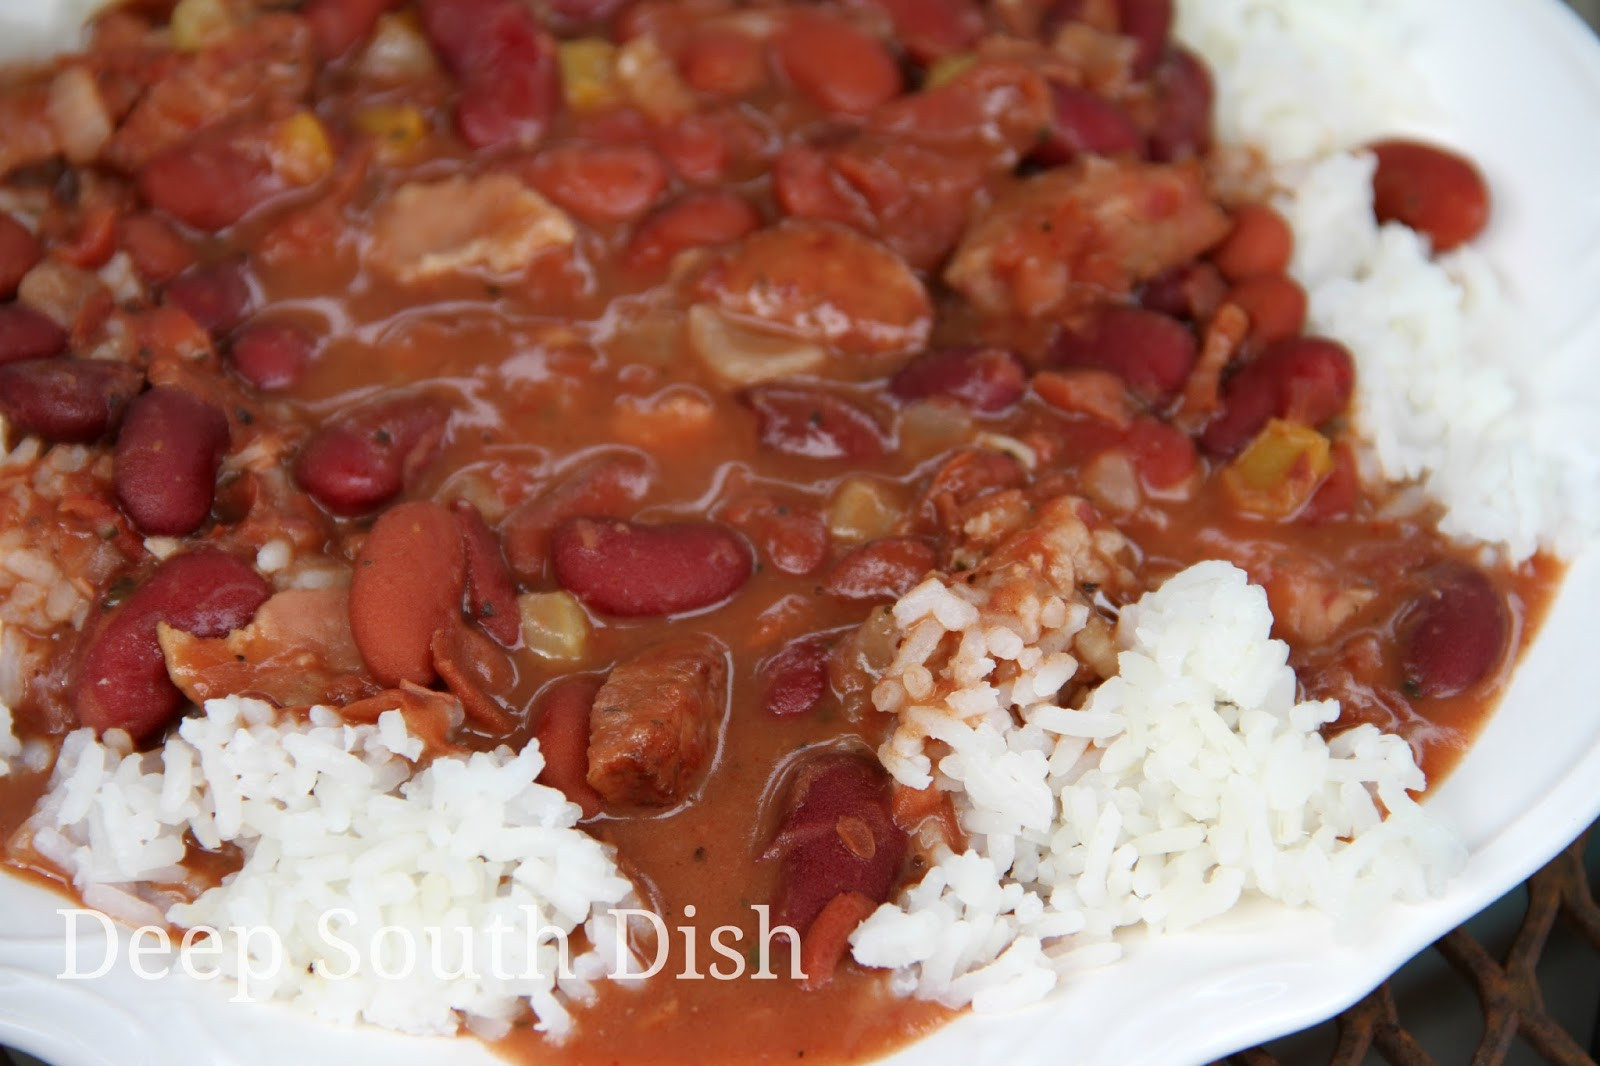 Quick Red Beans And Rice Recipe  Deep South Dish Blue Runner Shortcut Red Beans and Rice